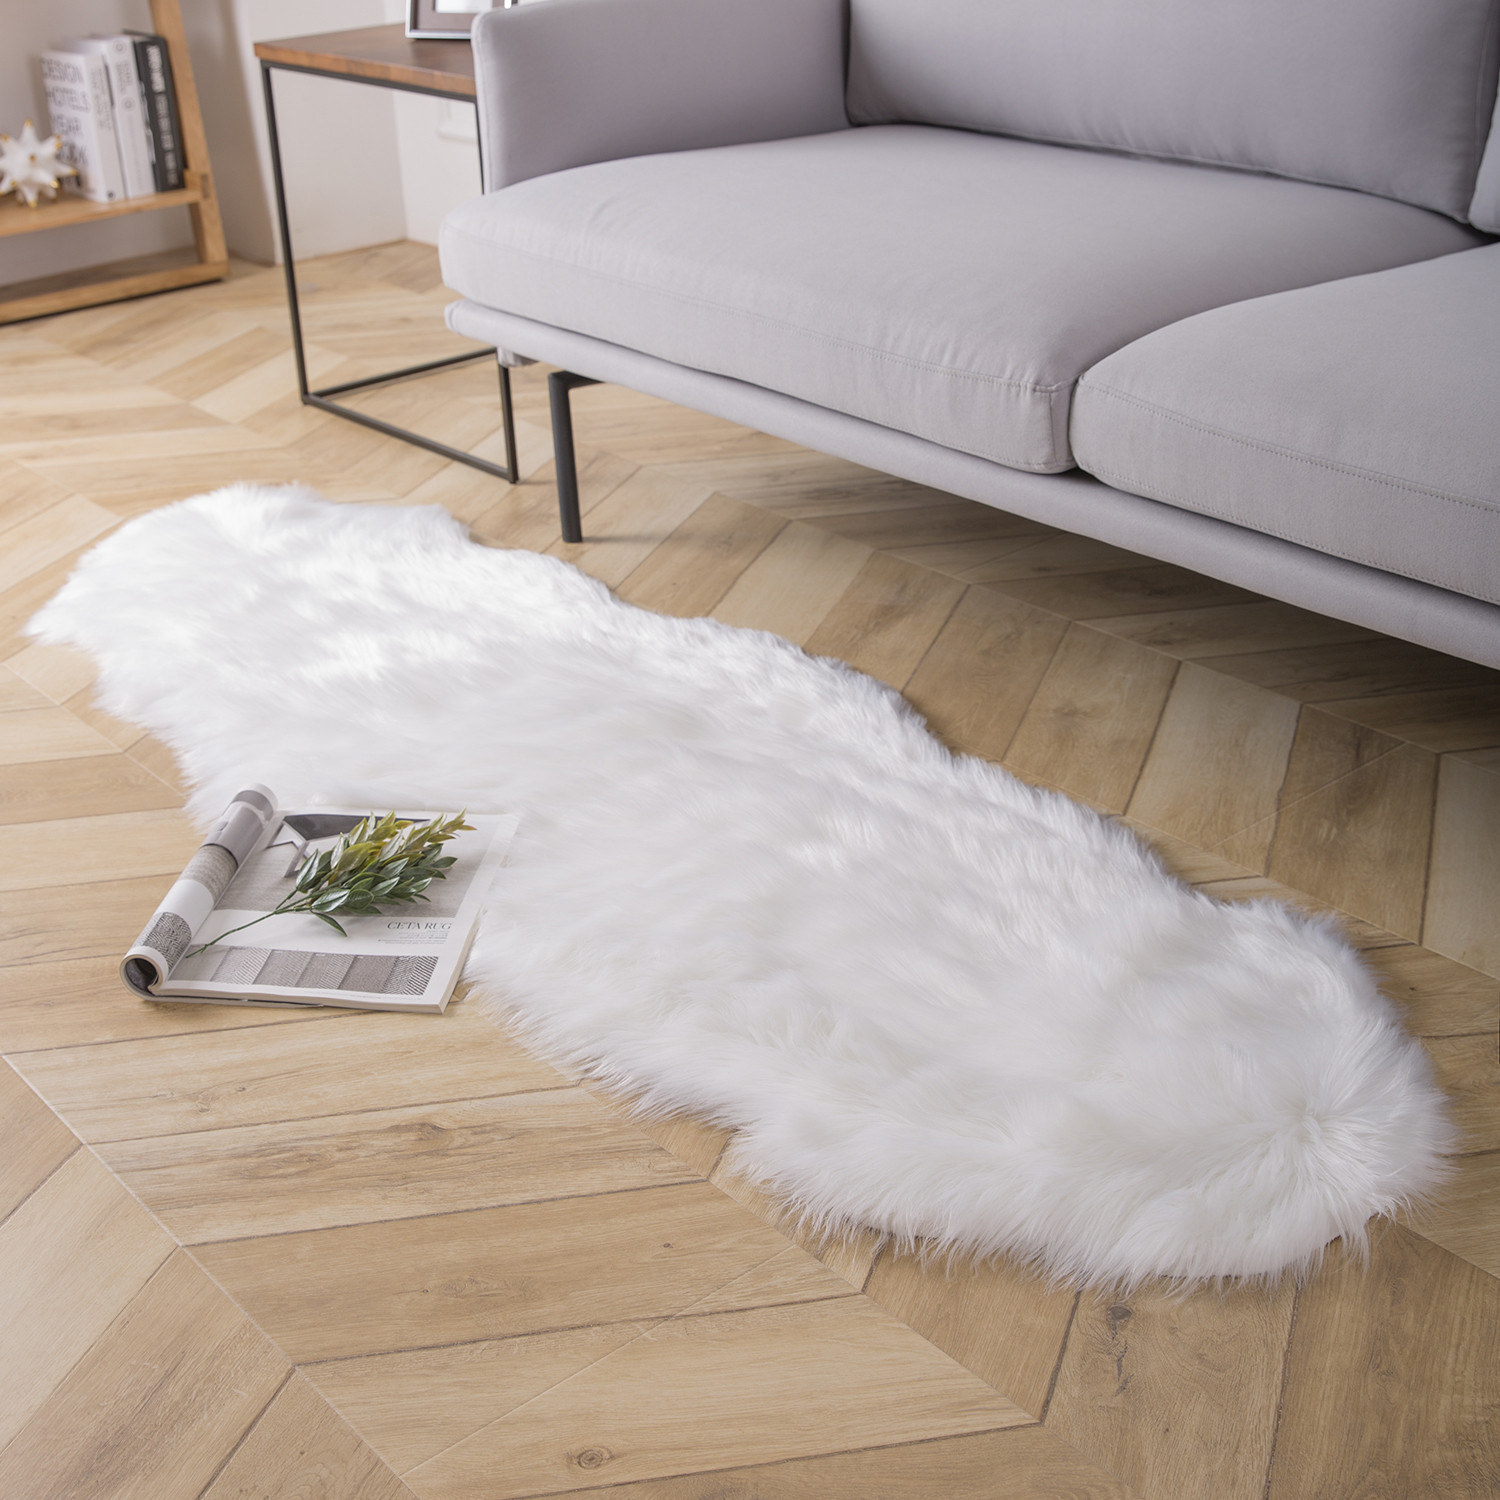 A white faux fur rug on the floor next to a couch